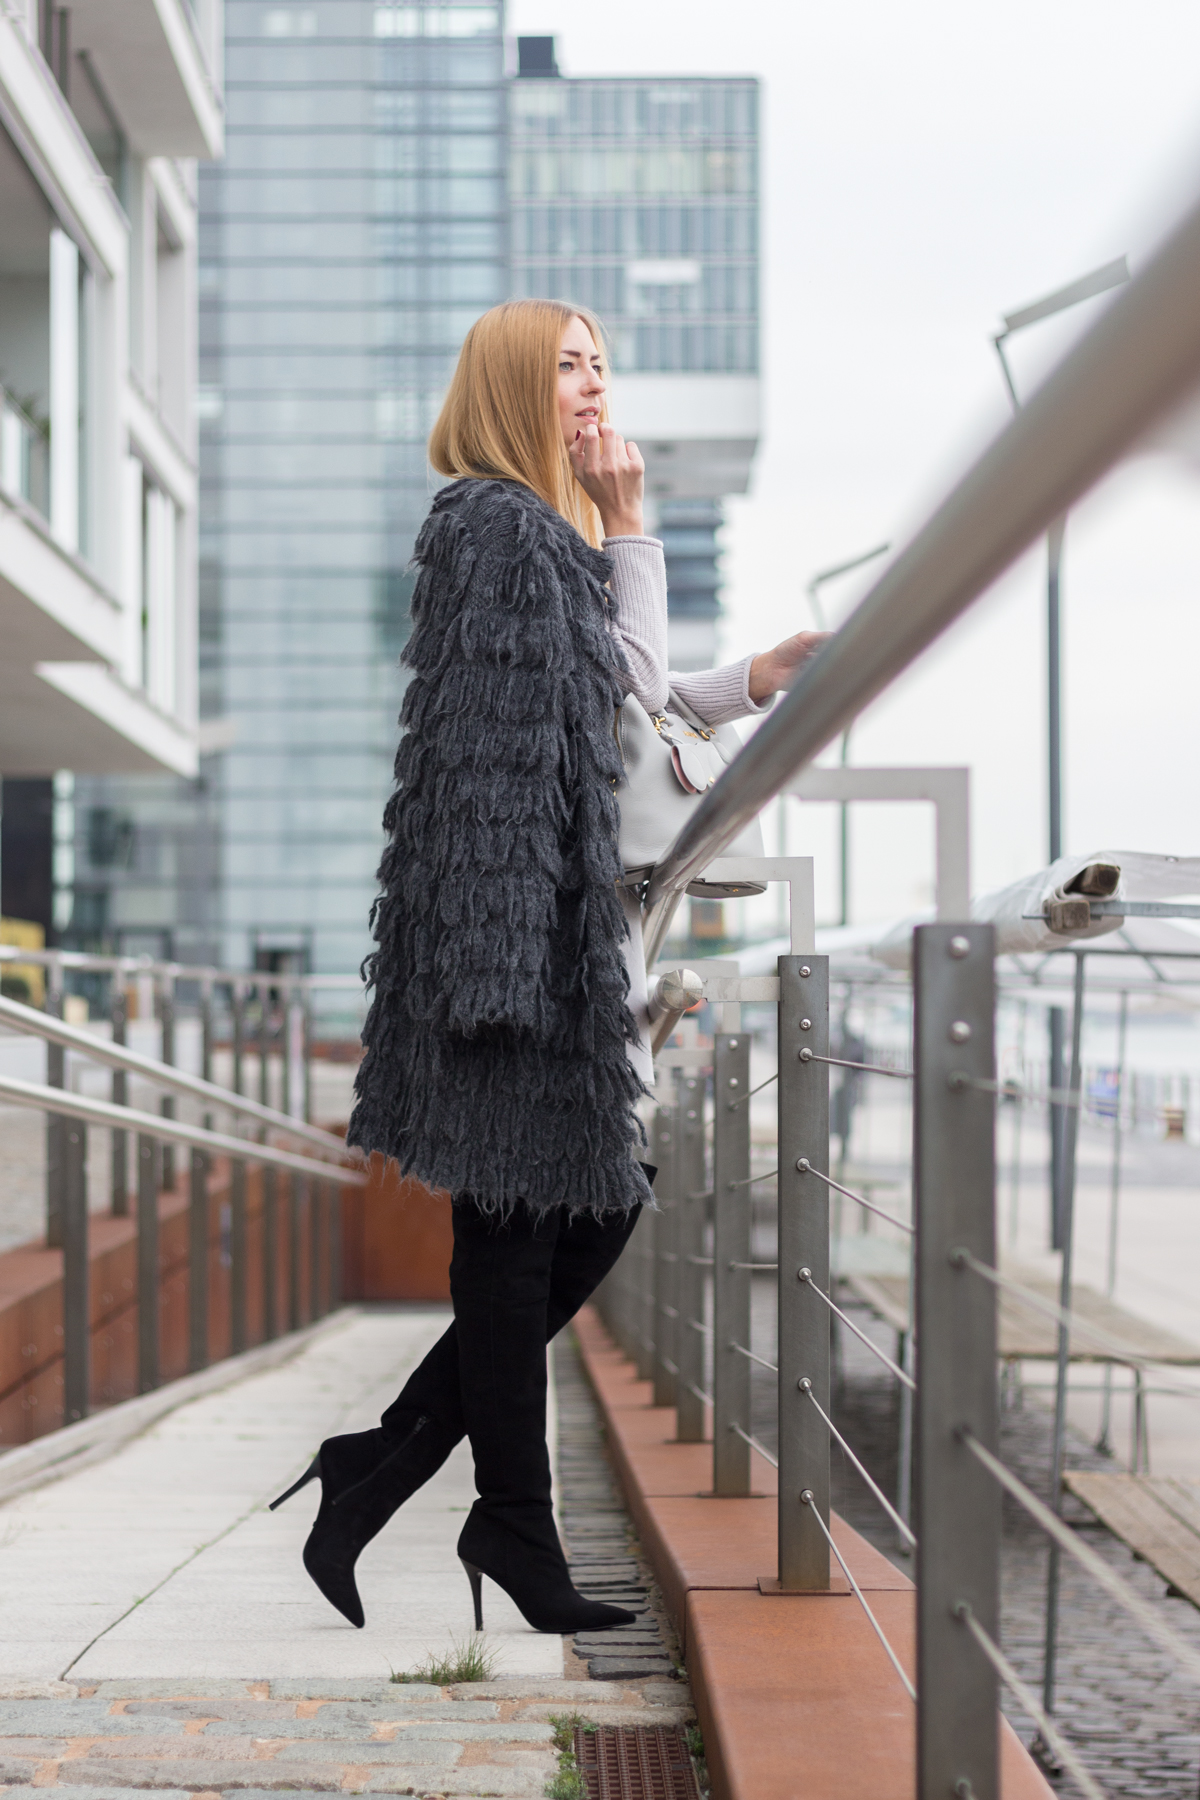 Furry Coat & Overknees II How I met my outfit by Dana Lohmüller II photos: Benedikt Napolowski